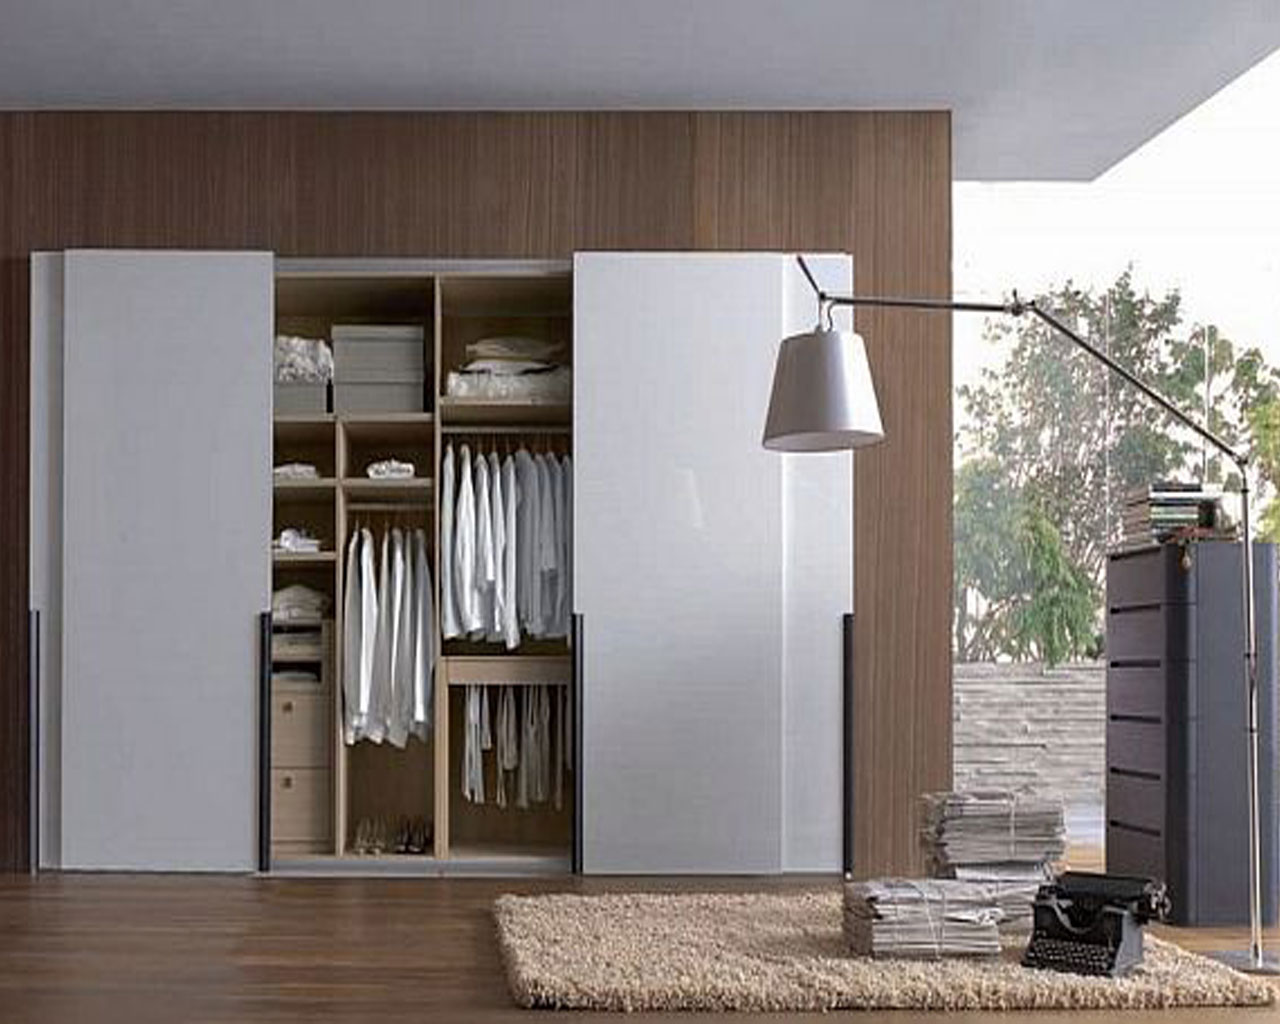 Minimalist Sliding Closet Door In White Modern Floor Lighting Fixture Small  White Interior Rug